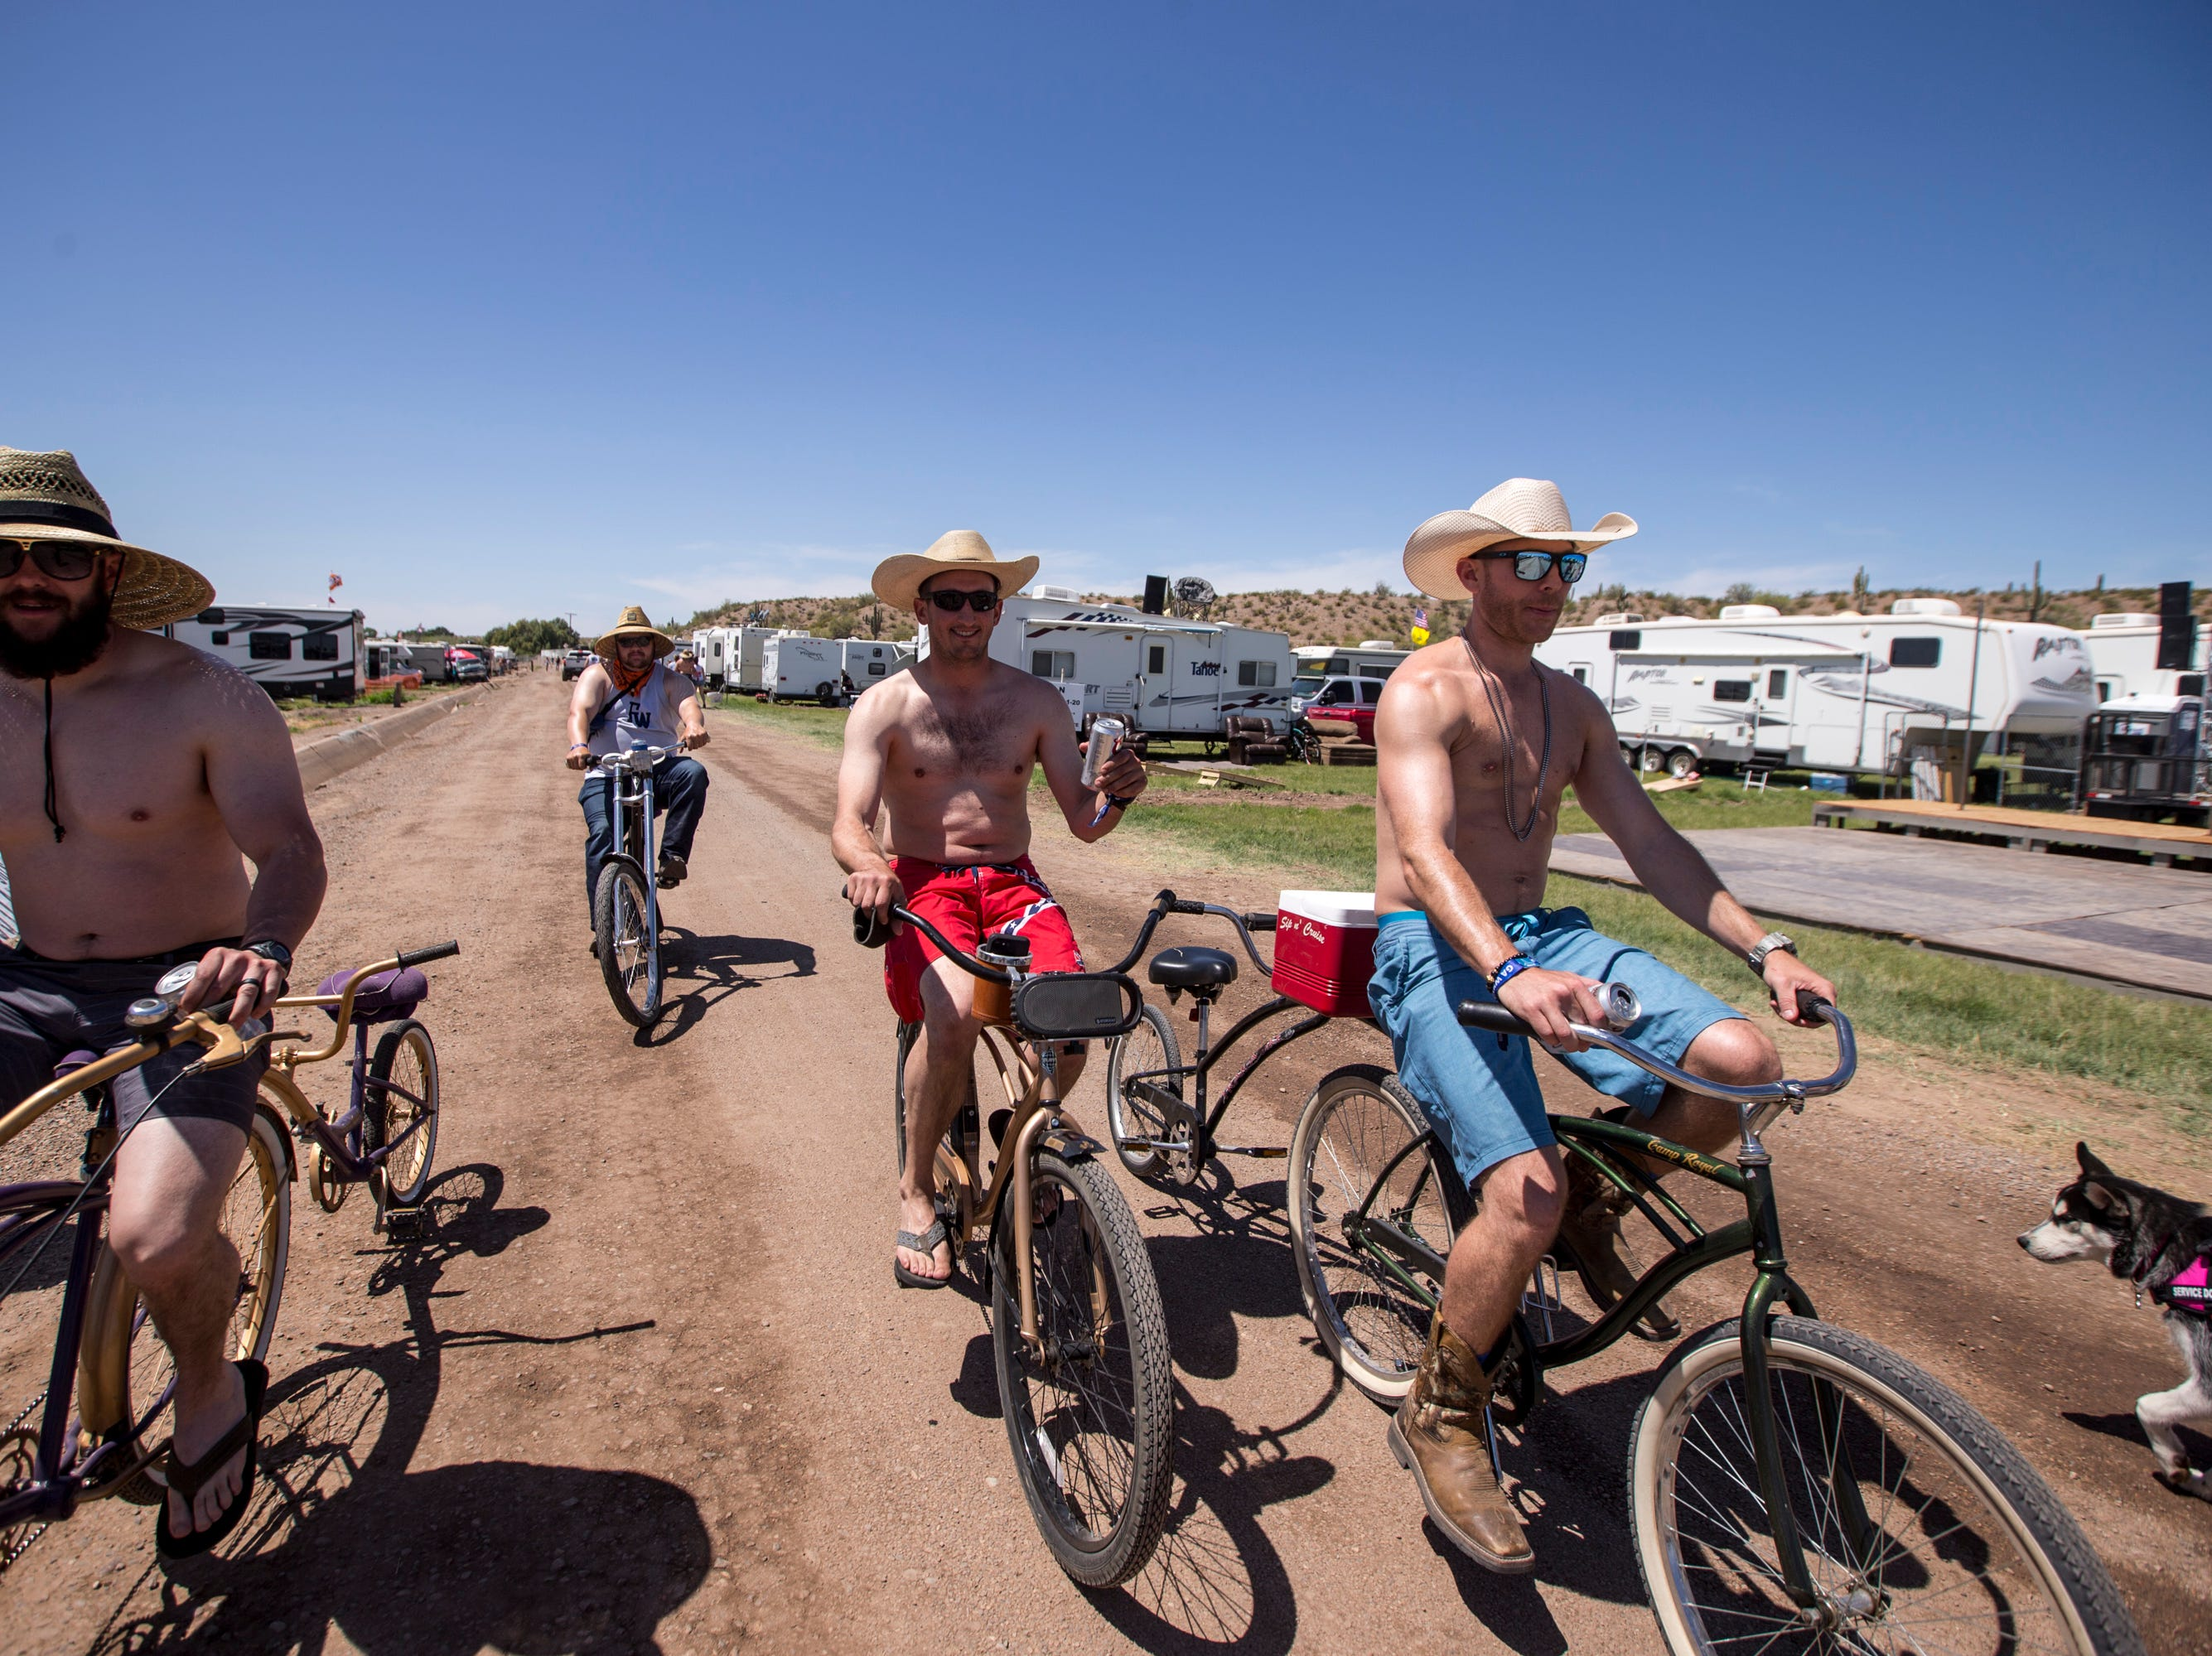 Festival-goers ride bikes around campsites on April 11, 2019, during Day 1 of Country Thunder Arizona in Florence.